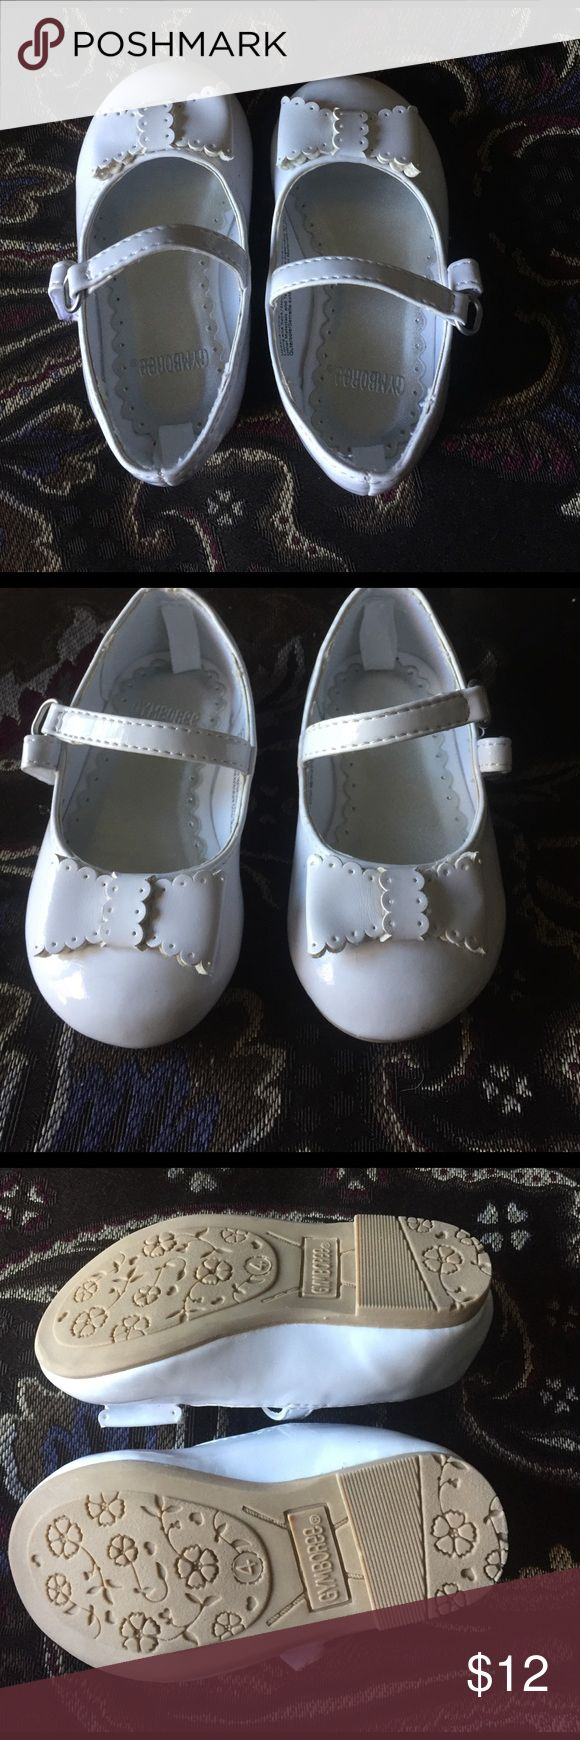 NWOT Gymboree Patent leather white Mary Jane shoes Never worn size 4, perfect for Easter! Gymboree Shoes Dress Shoes